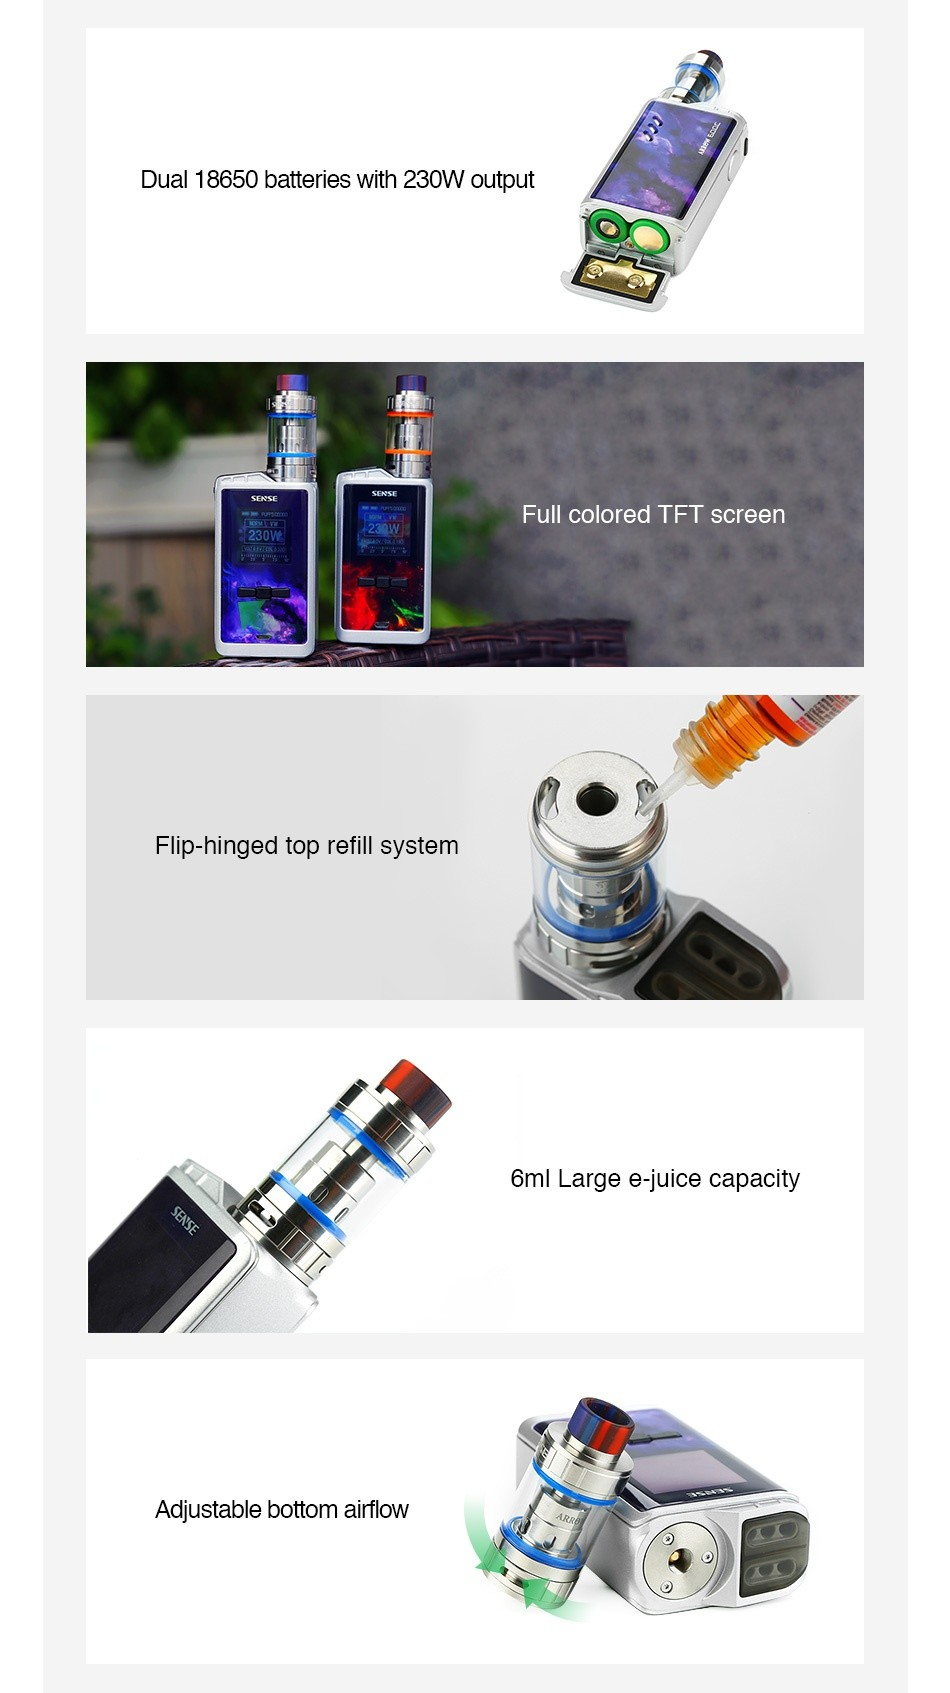 Linkedvape Classic Arrow 230W TC Kit Dual 18650 batteries with 230W output Full colored tft screen Flip hinged top refill system 6ml Large e juice capacity Adiustable bottom airflow